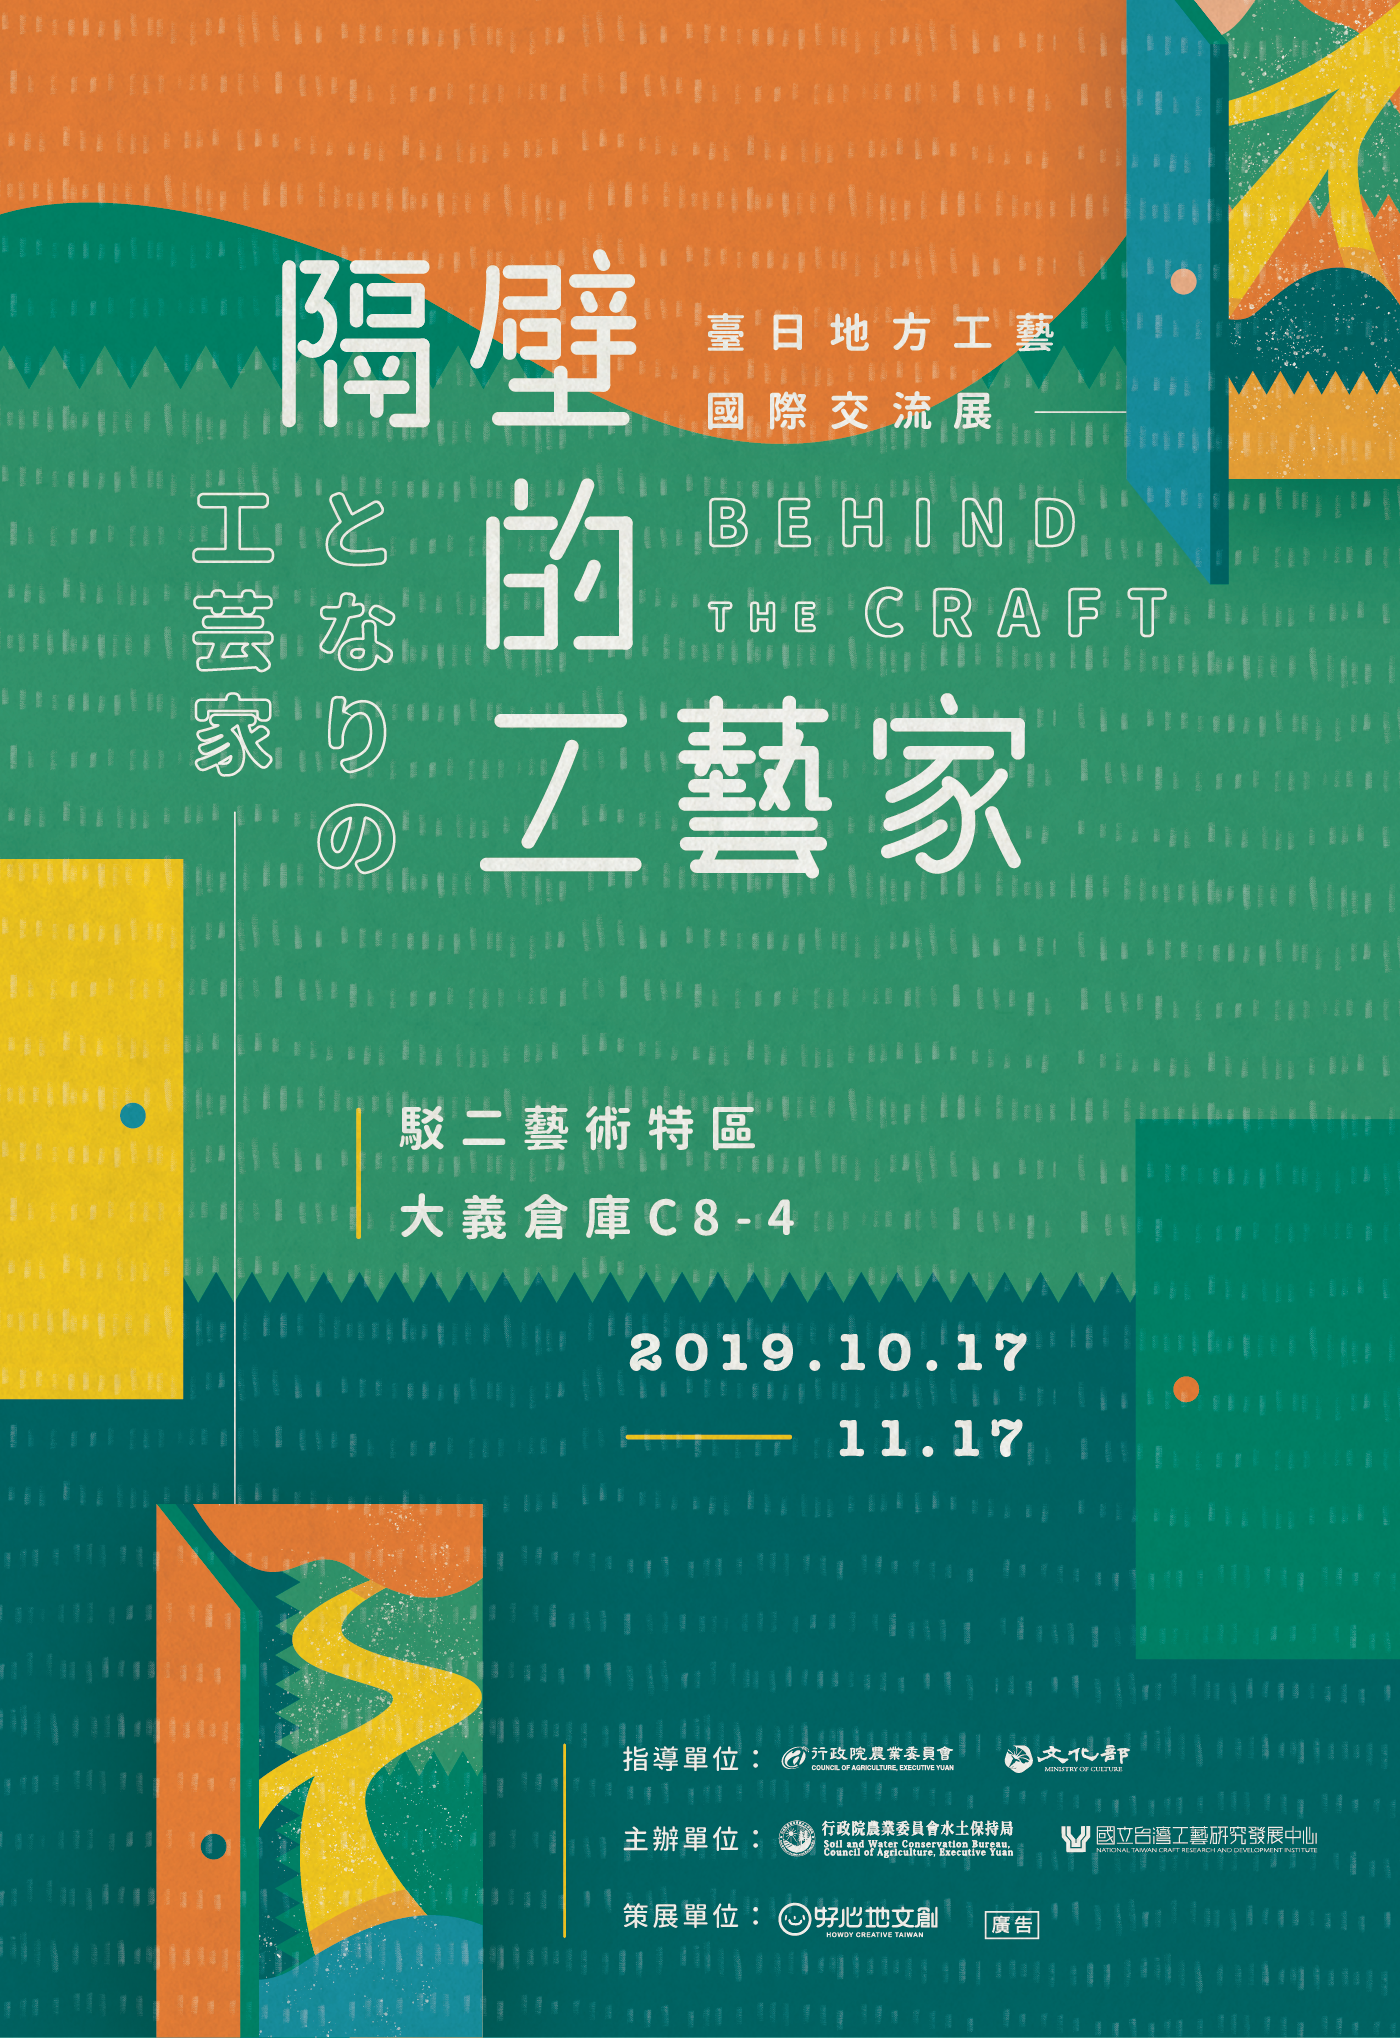 'Behind the Craft: Taiwan-Japan Crafts International Exchange Exhibition'